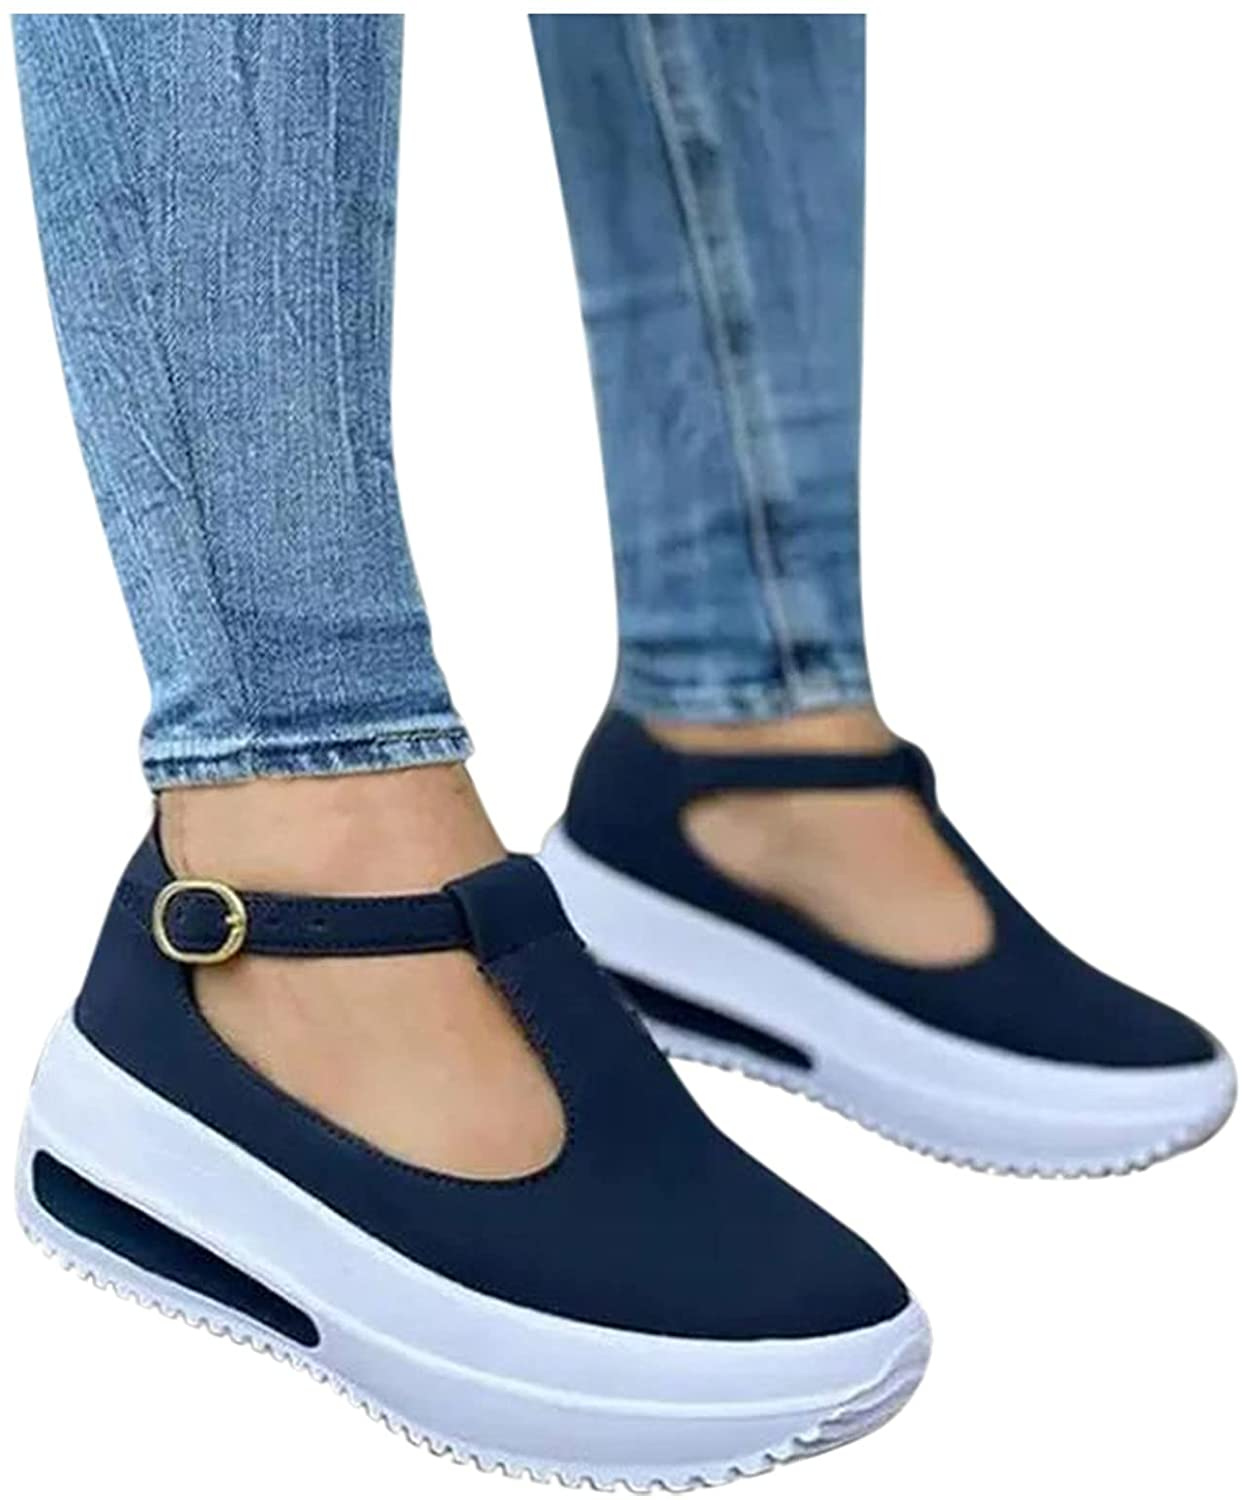 Gibobby Sandals for Women Casual Summer,2021 Platform Closed Toe Sandals Ankle Buckle Strap Athletic Outdoor Hiking Sandals